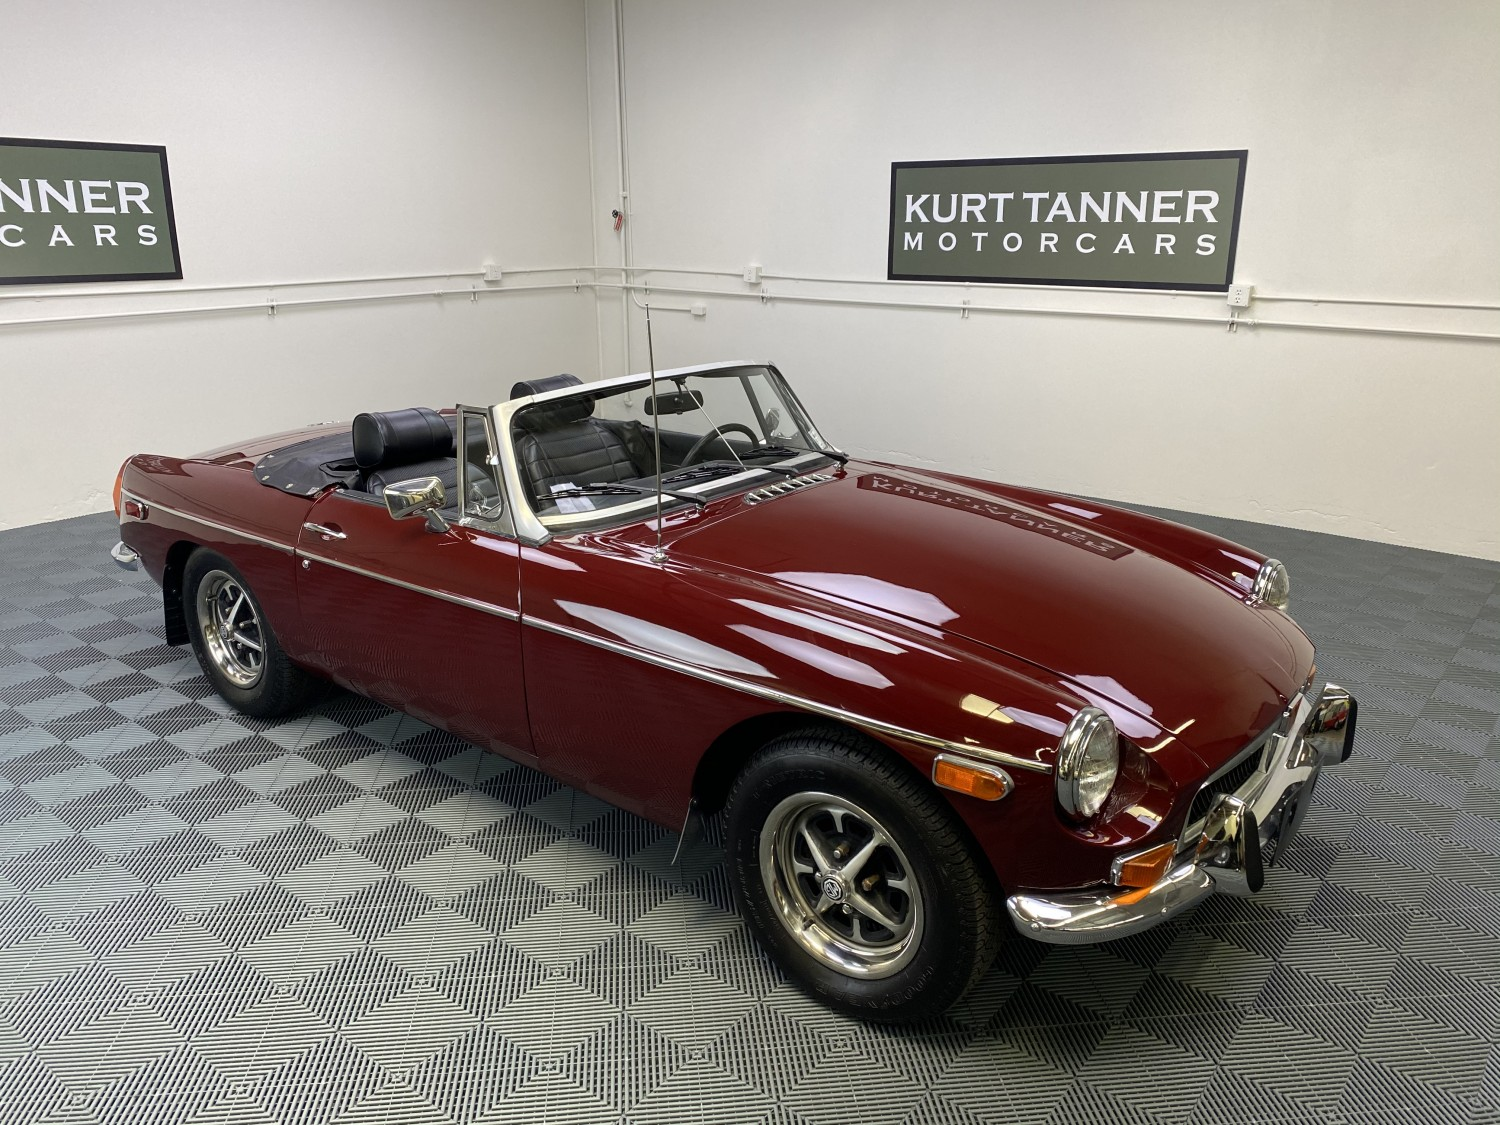 1974 MGB ROADSTER. DAMASK RED WITH BLACK TRIM, TOP, TOP BOOT, AND TONNEAU COVER. 4-SPEED, ROSTYLE WHEELS. EXCELLENT COSMETIC RESTORATION. REBUILT ENGINE. LOVELY CAR.